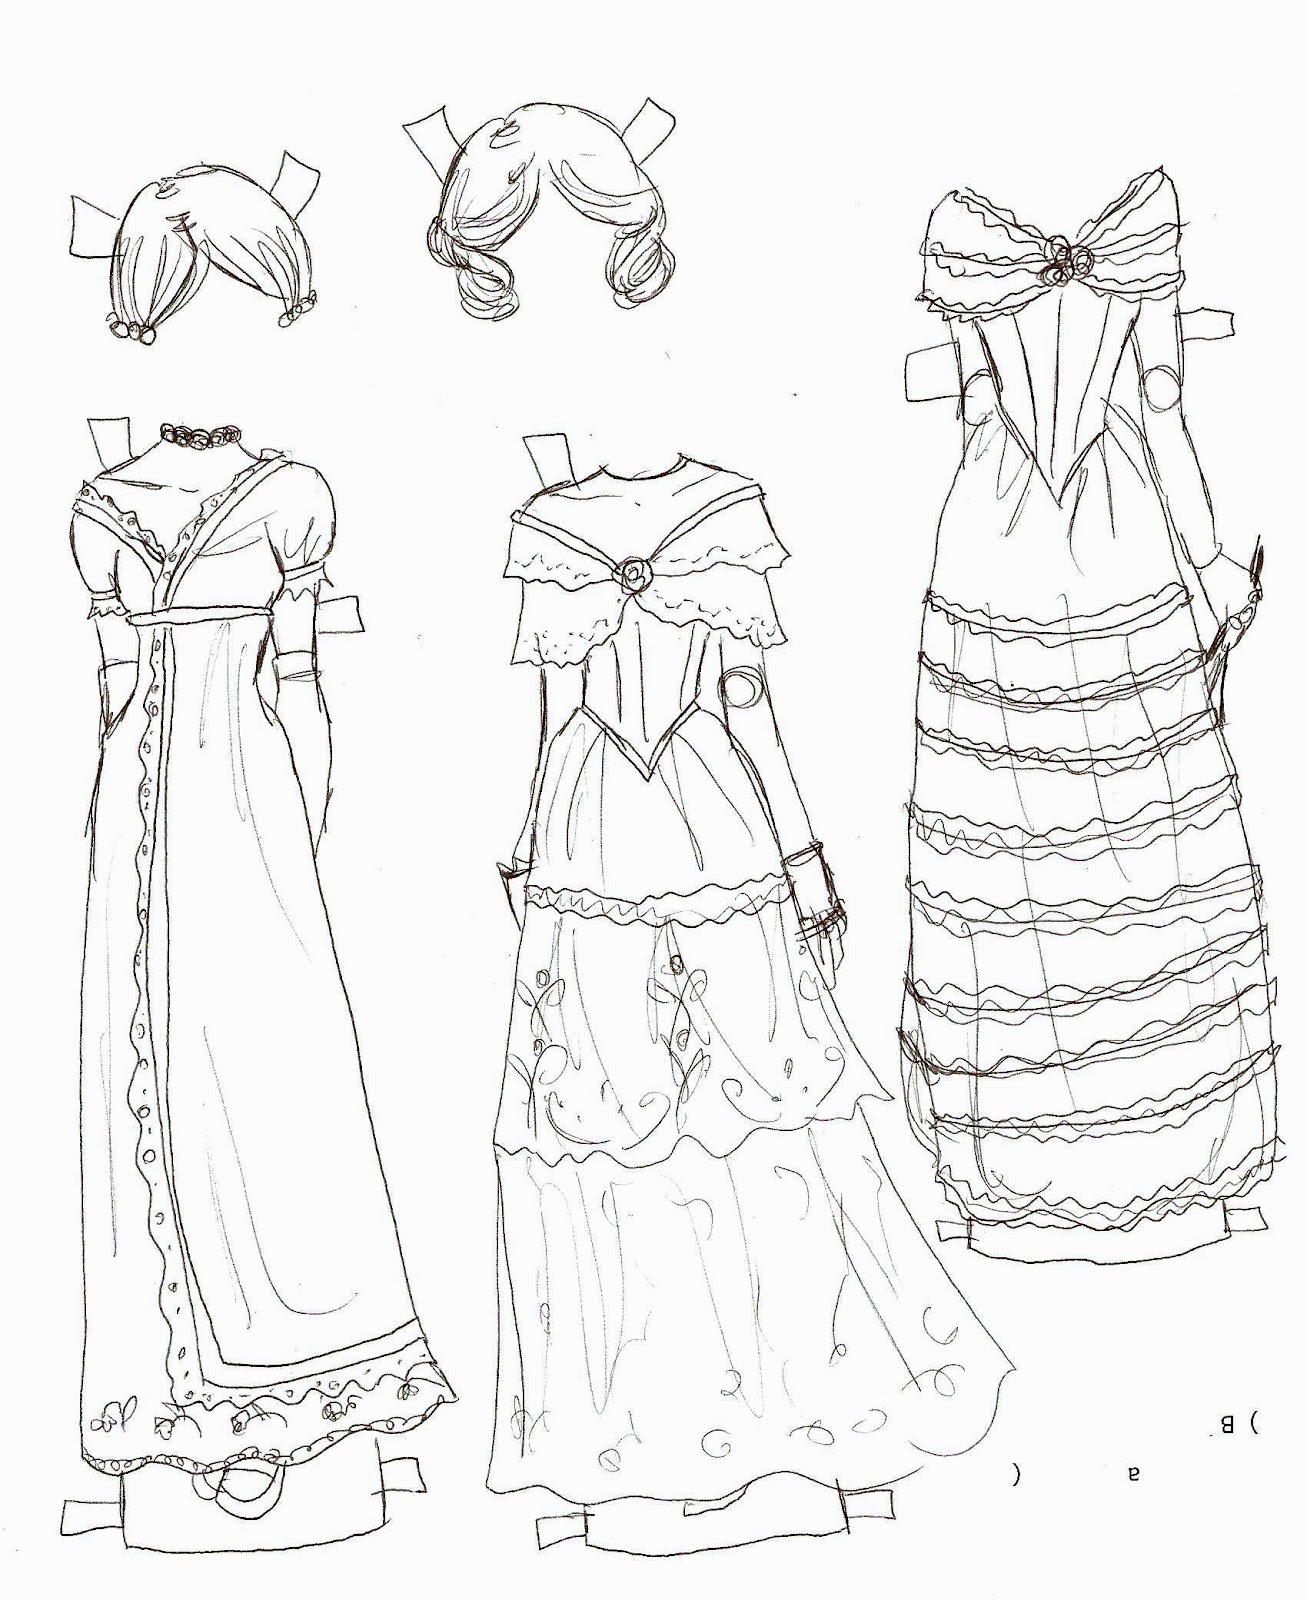 One For All Digital Aerial together with 2674081007890798 additionally Cream Bed Skirt likewise 2012 05 01 archive in addition Dress Card Template. on drawing colored pleated skirt